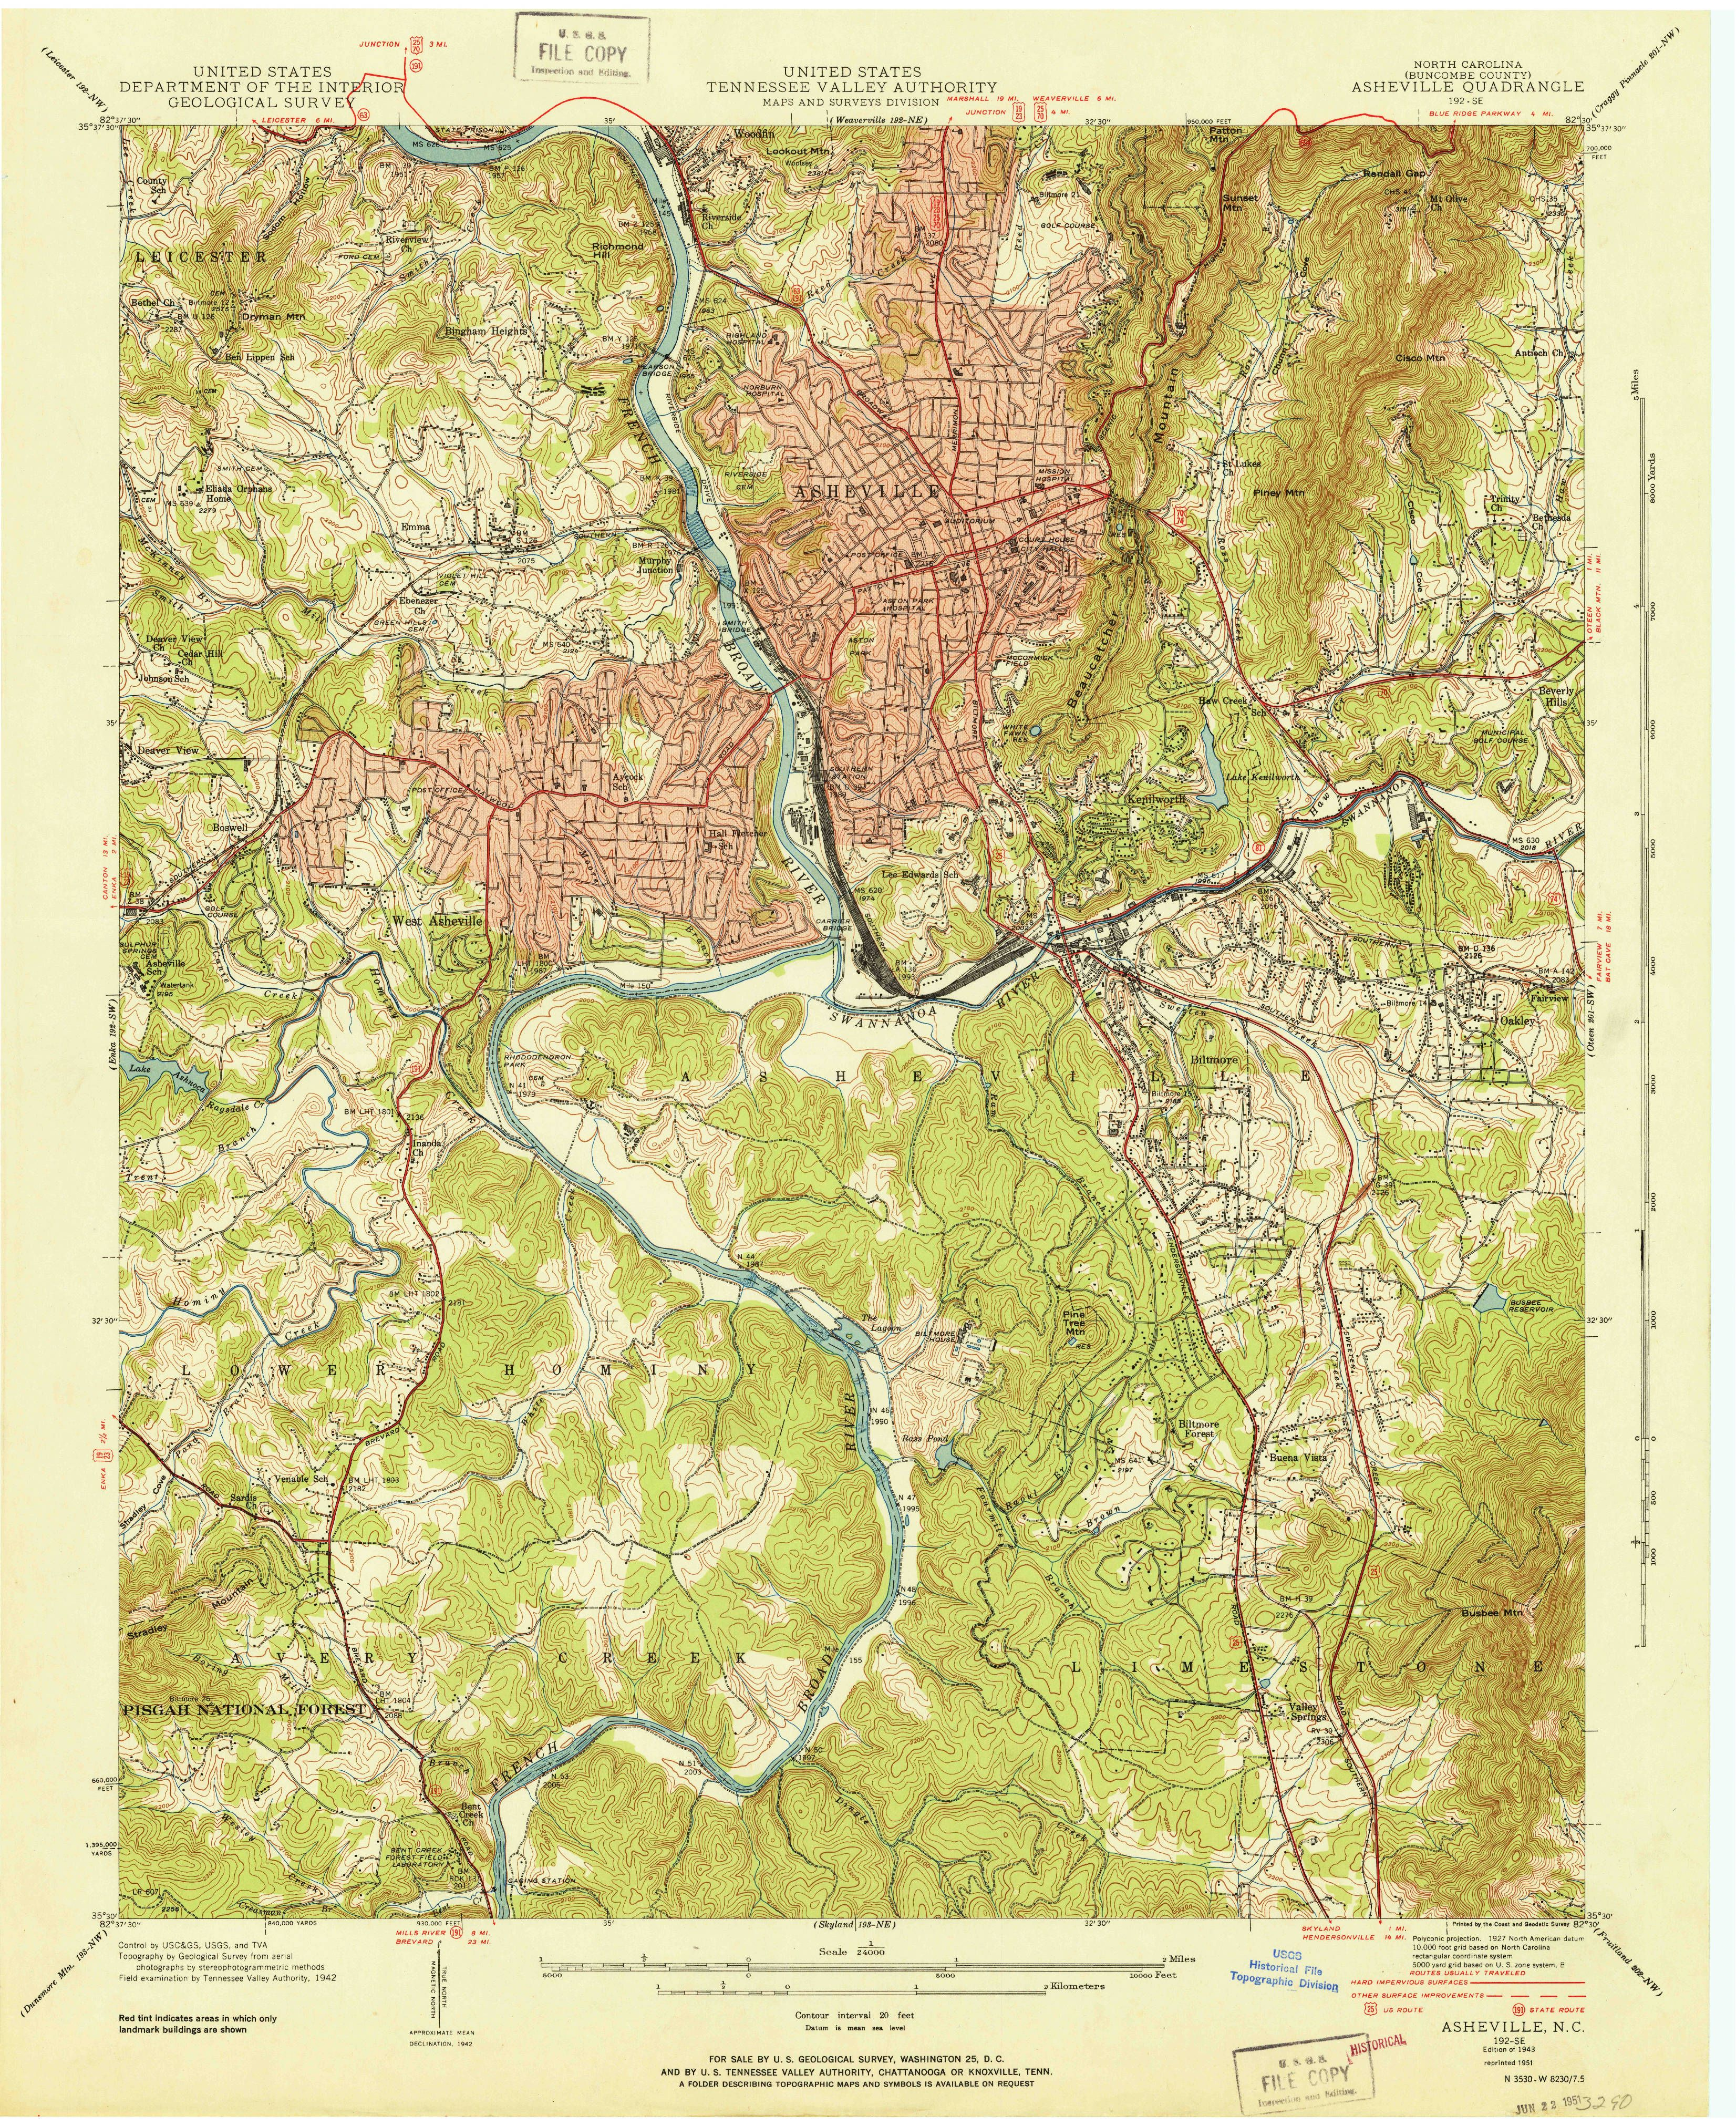 Asheville, NC—1943. Map from the USGS Historical Topographic Map on